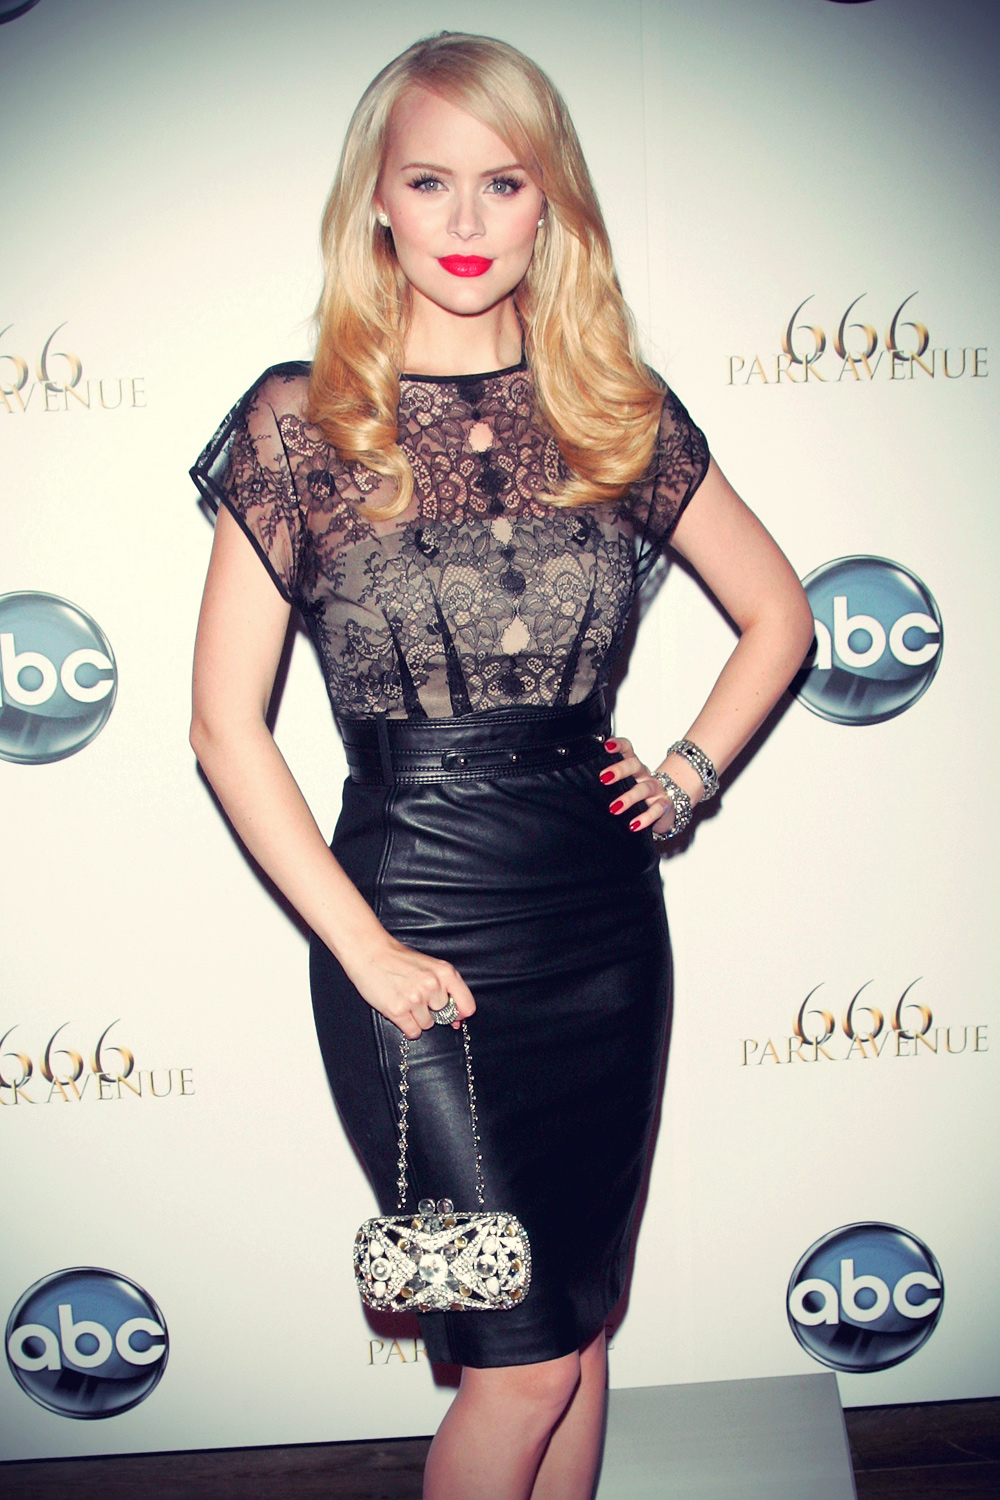 Helena Mattsson attends the 666 Park Avenue Series Premiere Party